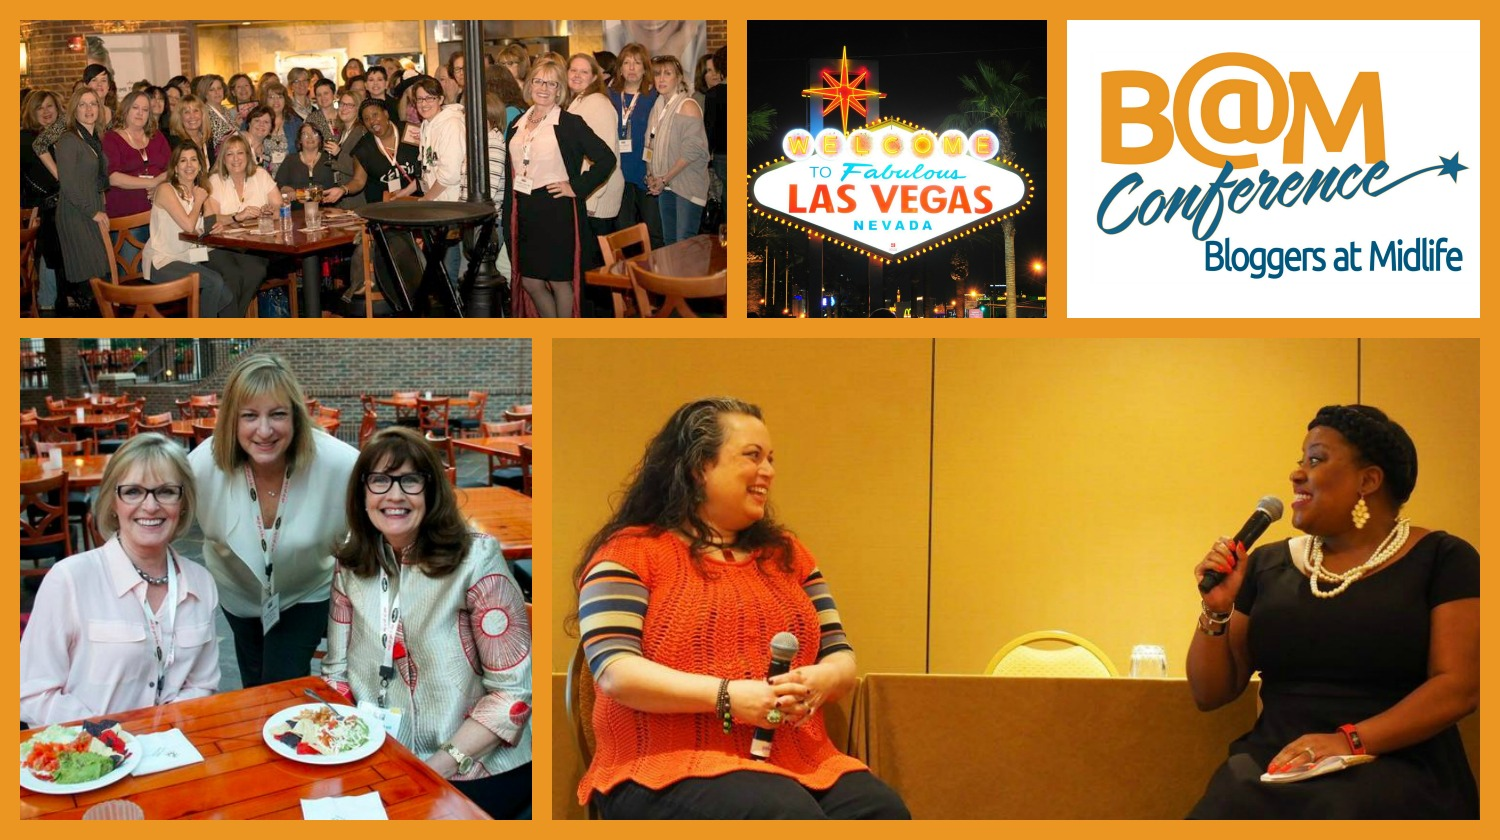 BAM Conference: 5 Reasons You Should Attend